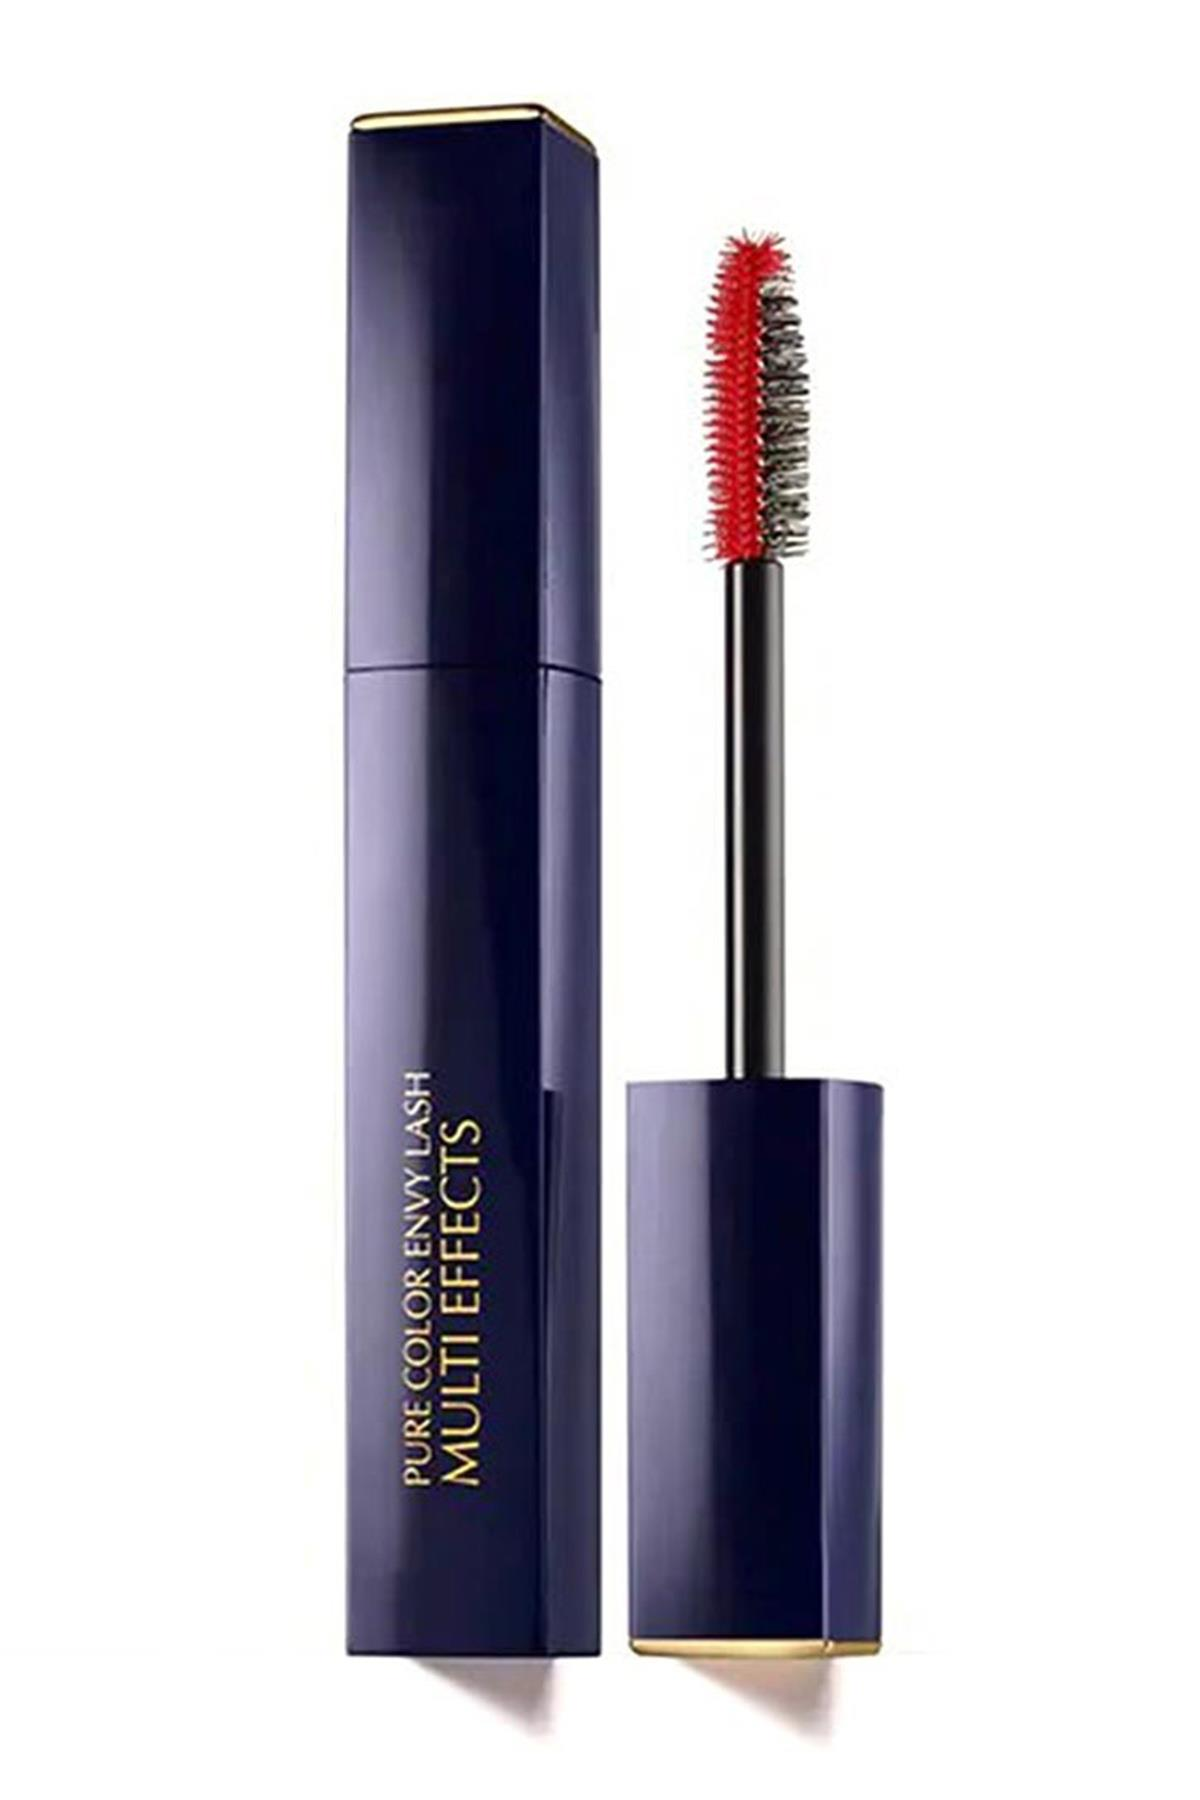 Estee Lauder Pure Color Envy Lash Maskara 01 Black